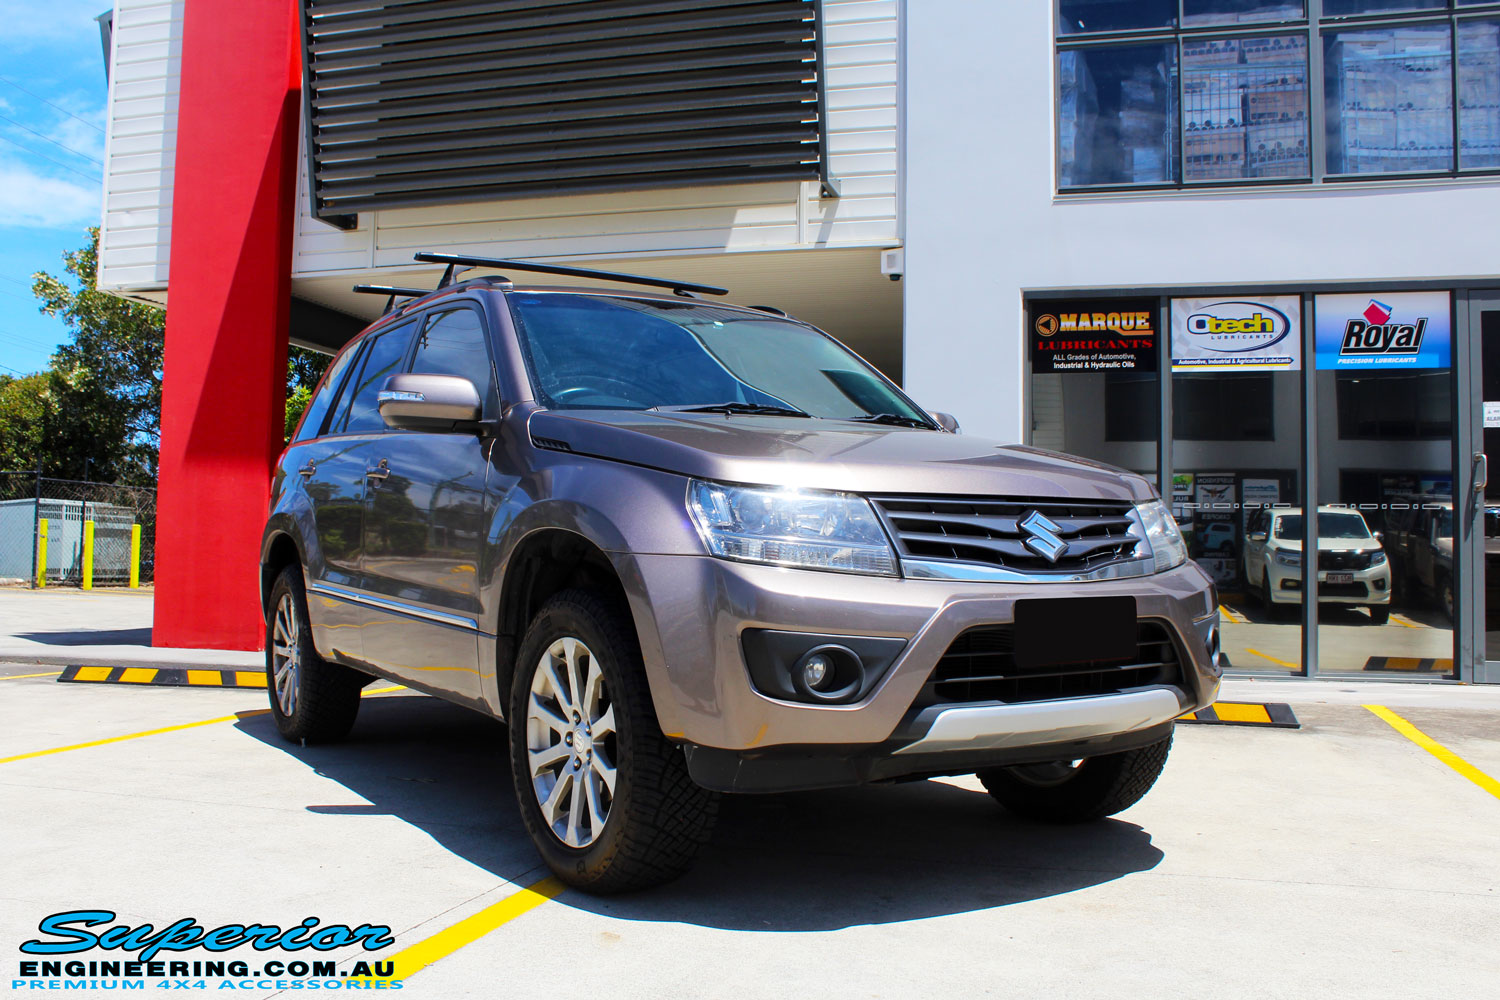 Right front side view of a Suzuki Grand Vitara in Gold after fitment of a Ironman 4x4 45mm Suspension Lift Kit